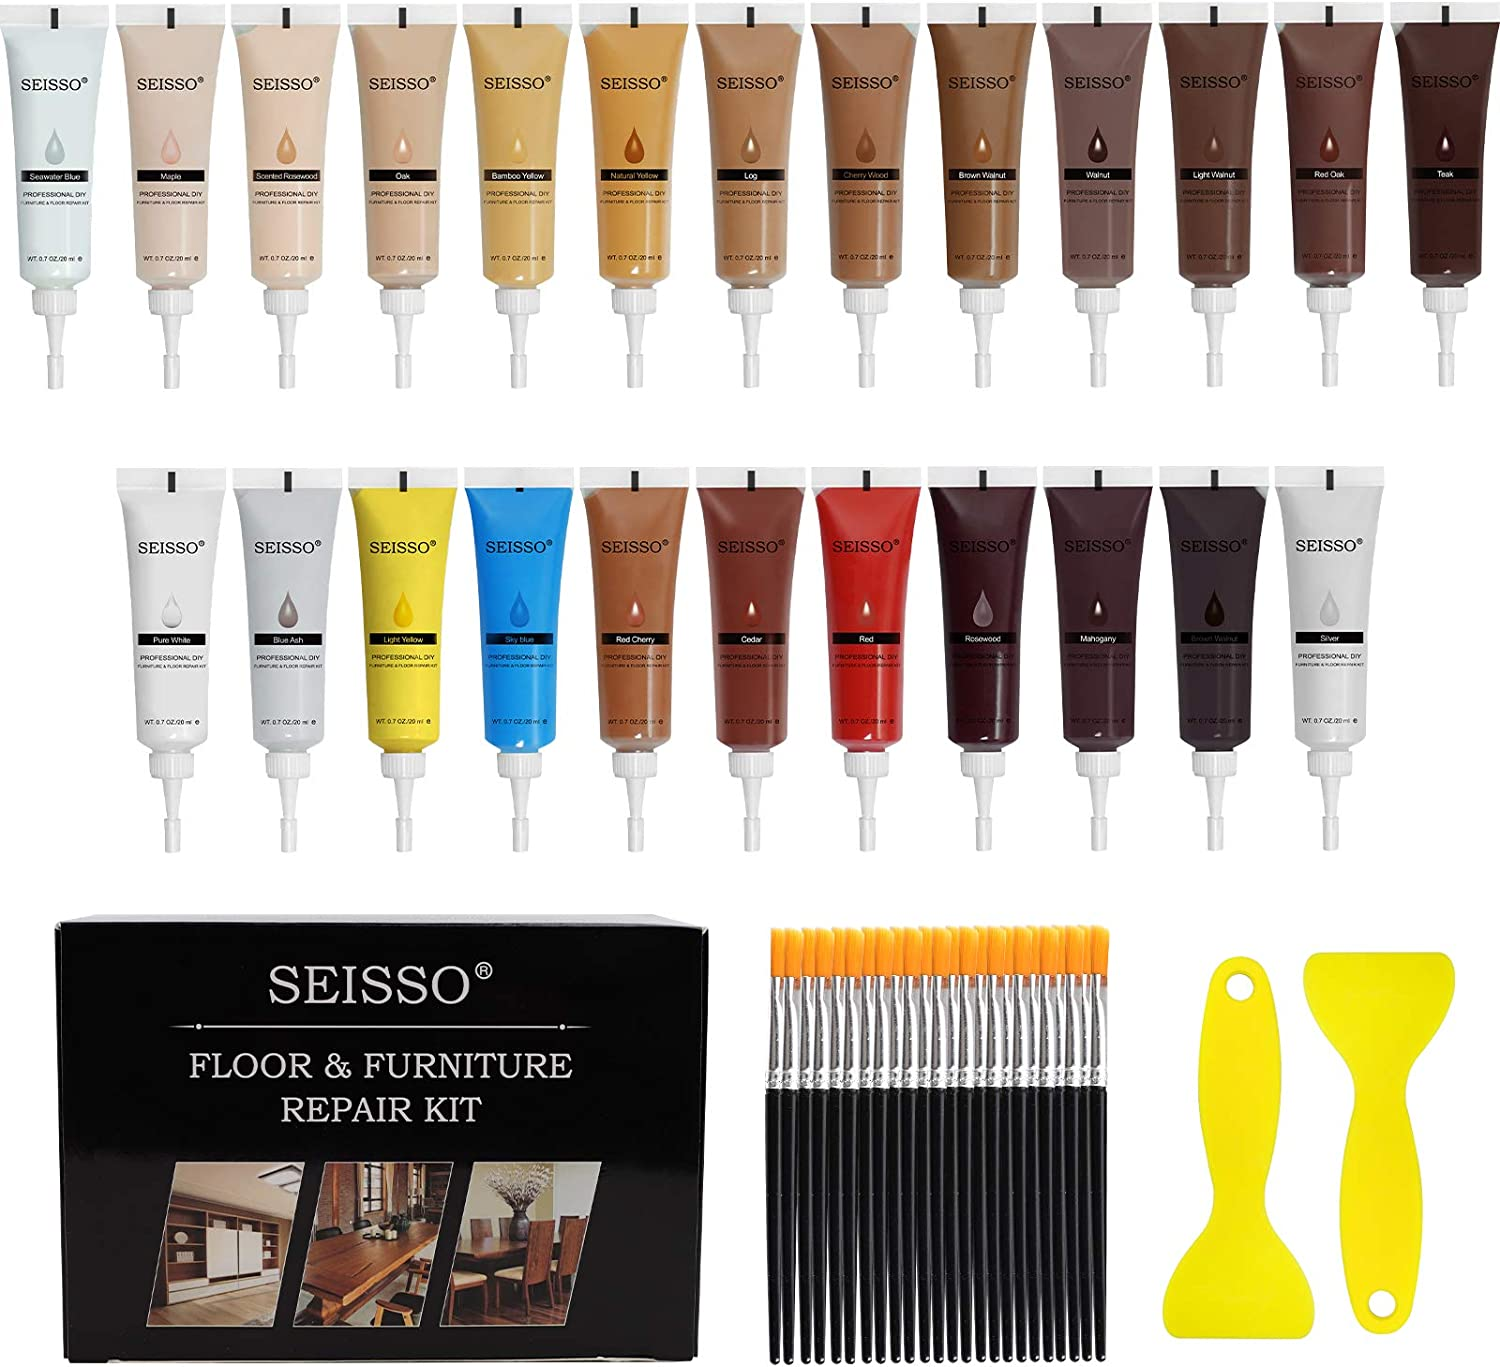 Wood Repair Kit Wood Filler Furniture Scratch Resin Repair Kit - Set of 50 with Brushes Plastic Scraper Any Color for Stains, Scratches, Tables, Desks, WoodenFloors, Carpenters, 24 Colors